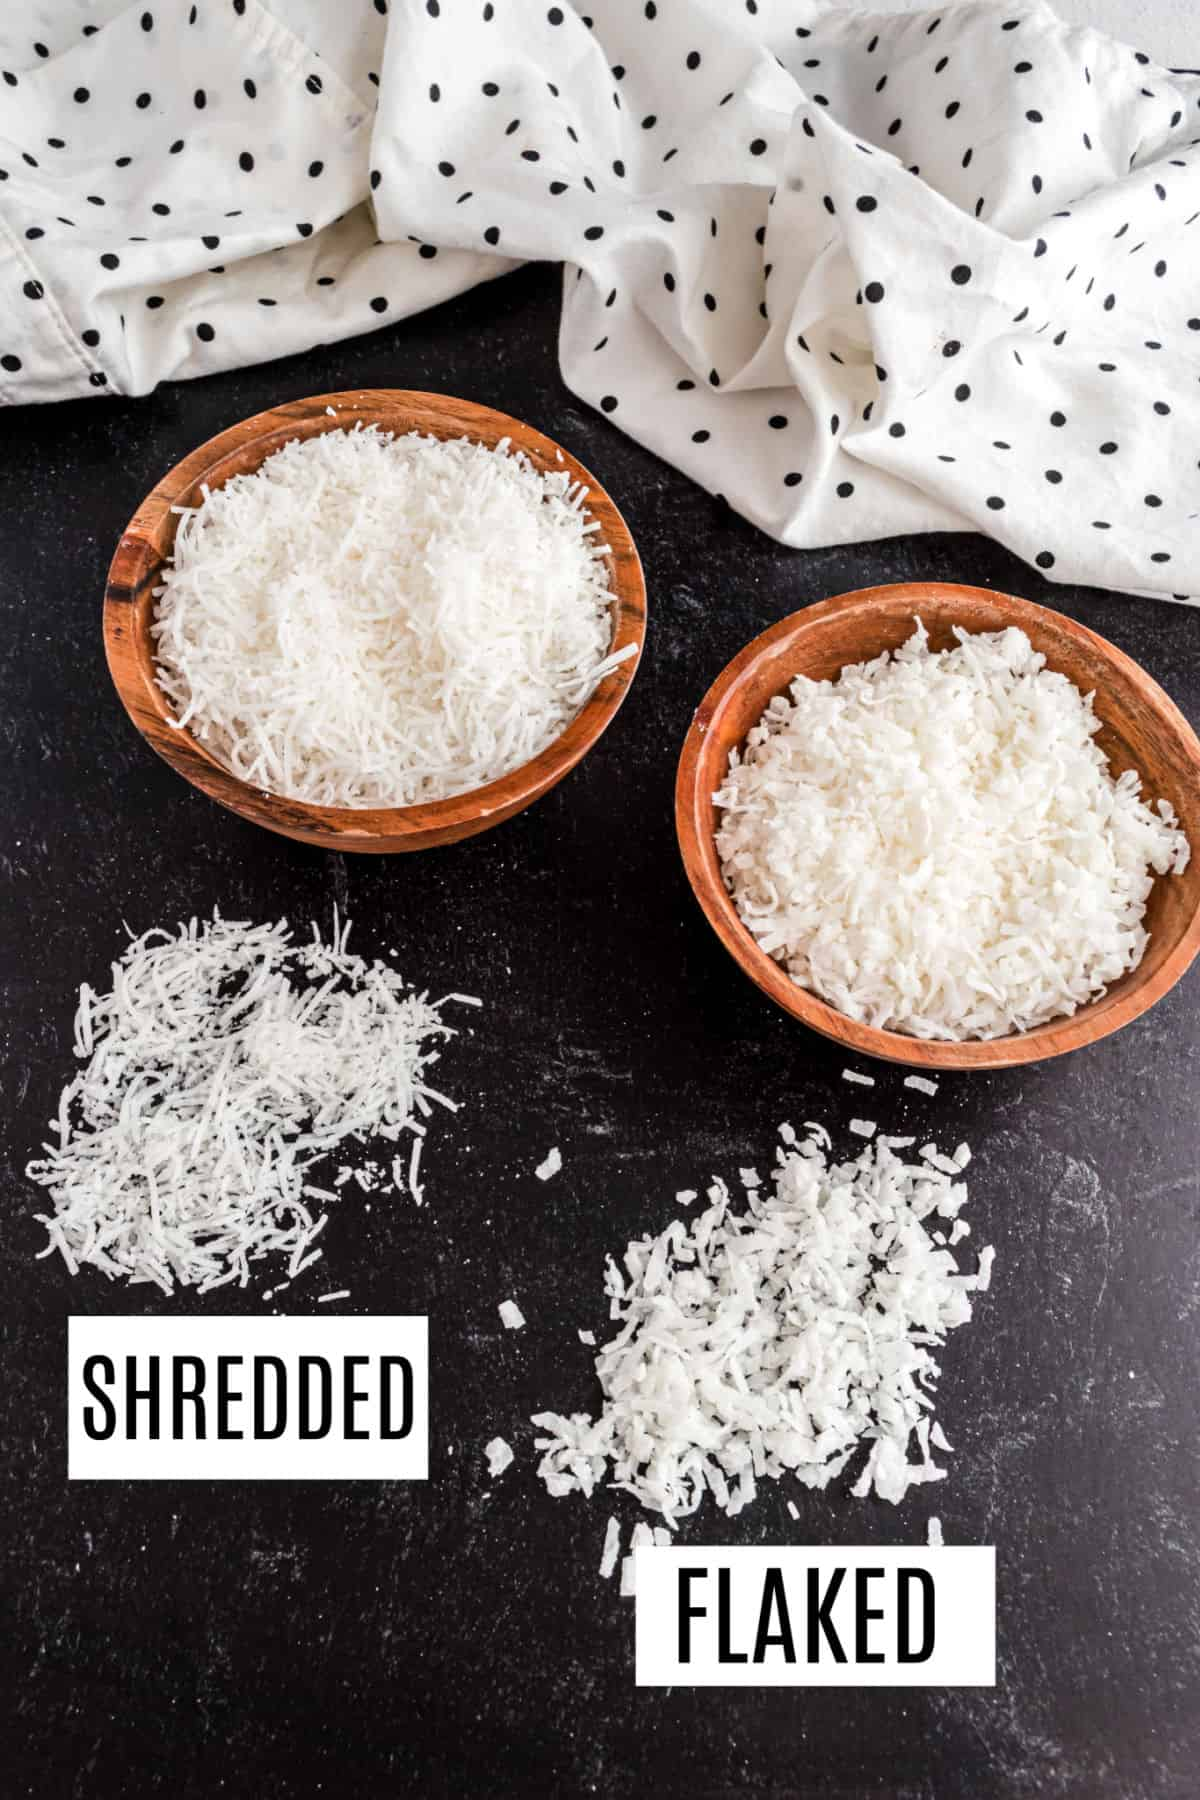 Shredded and flaked coconut in bowls for comnparison.